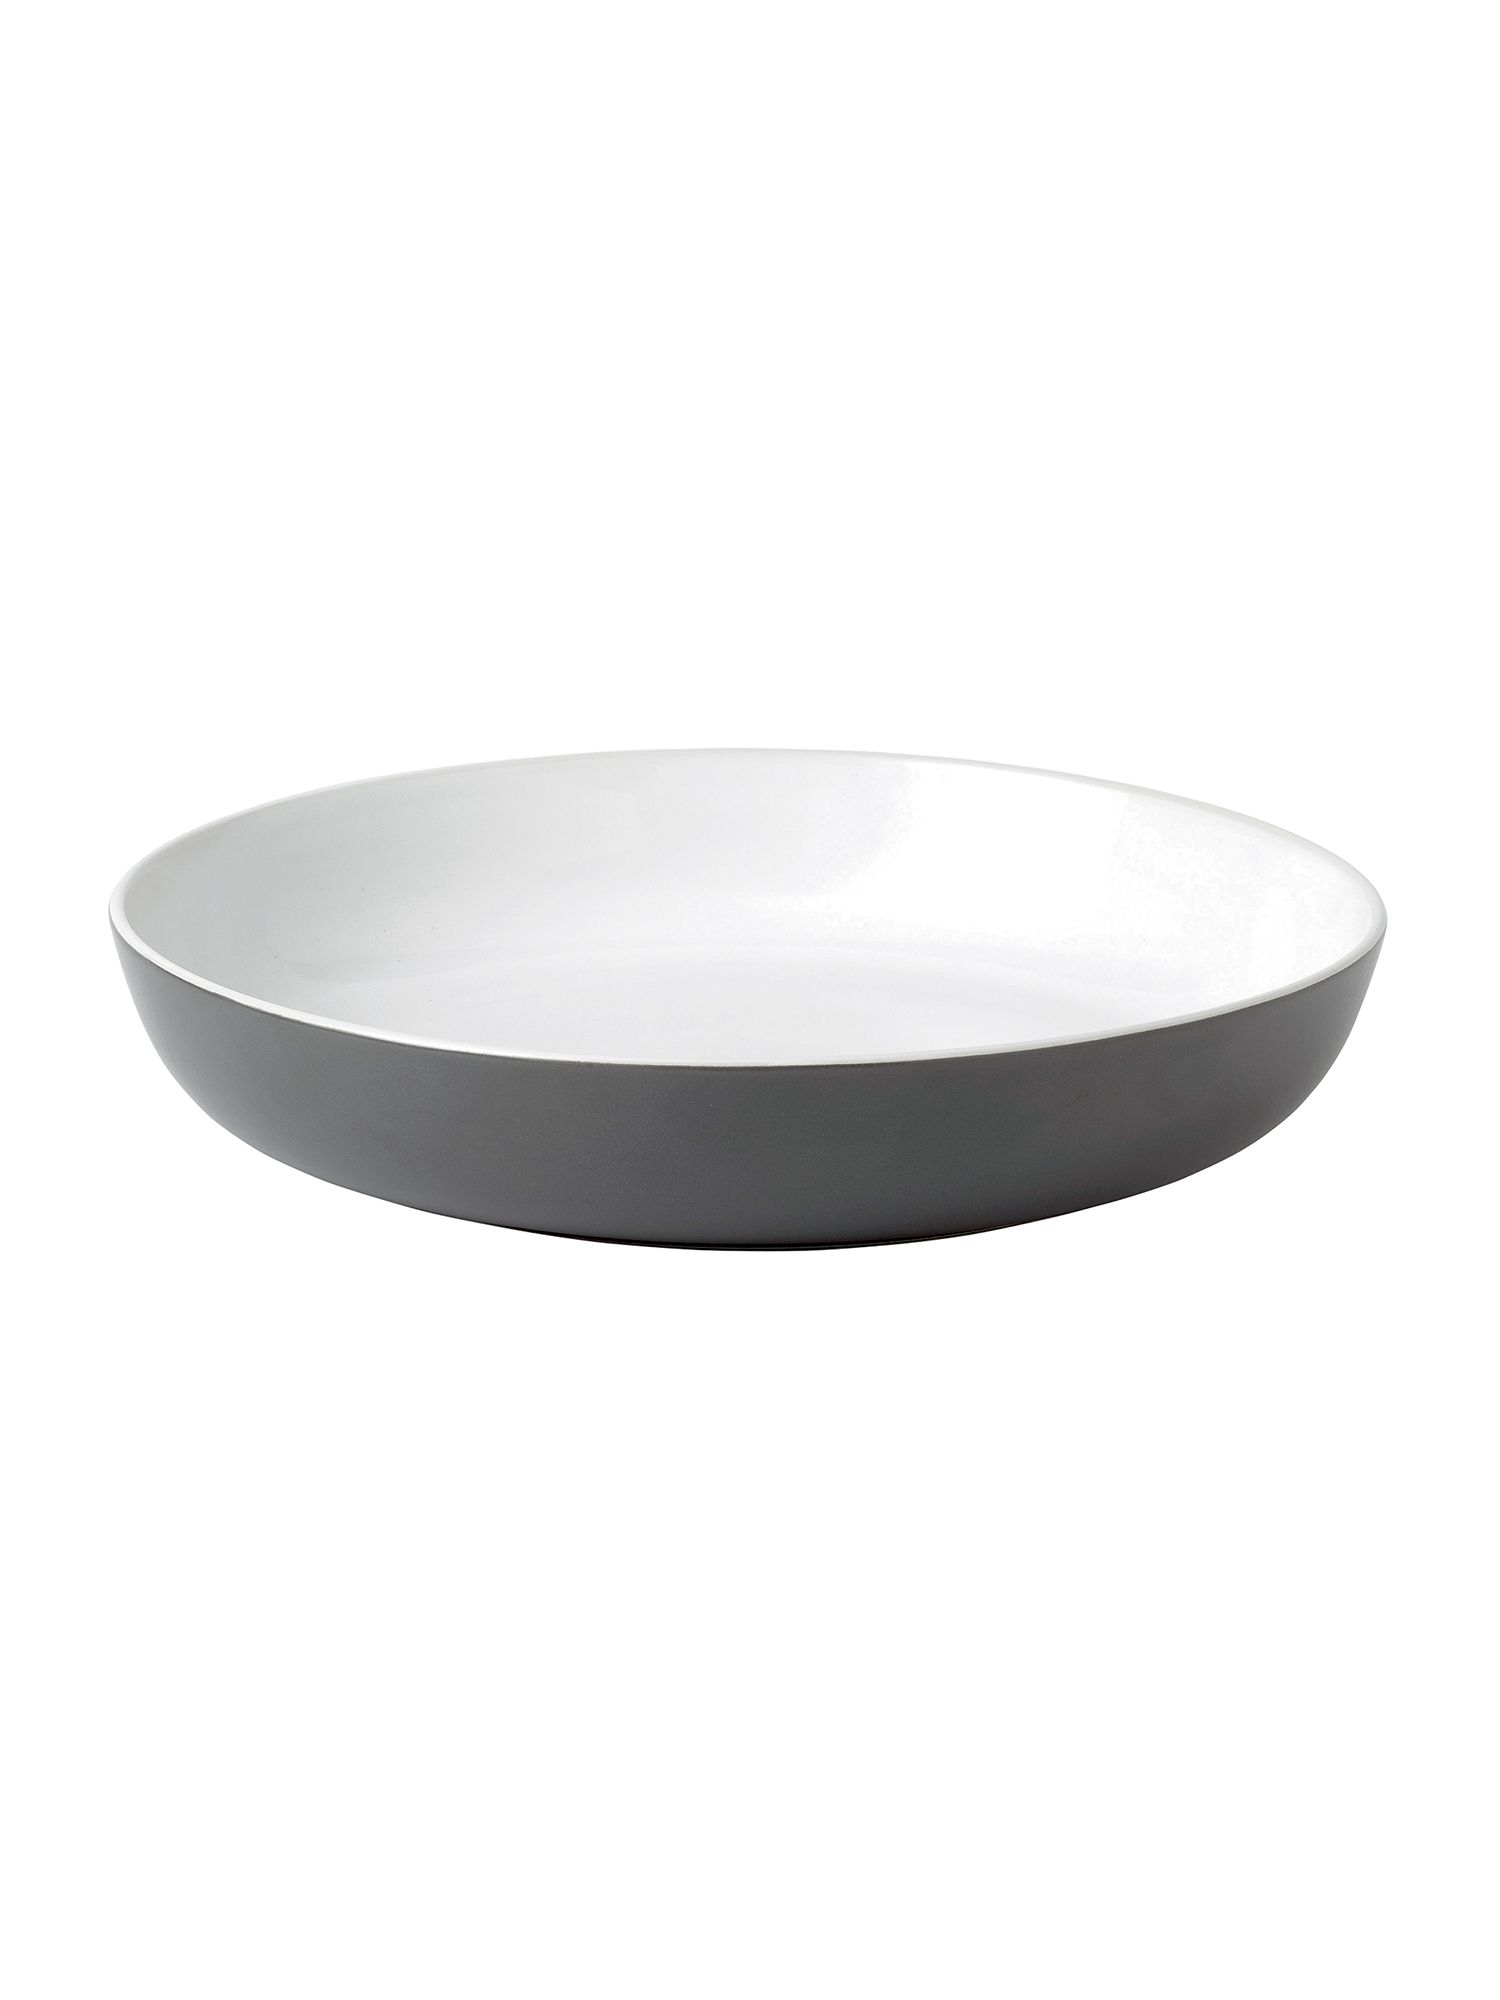 Gordon ramsay bread street serving bowl 28cm